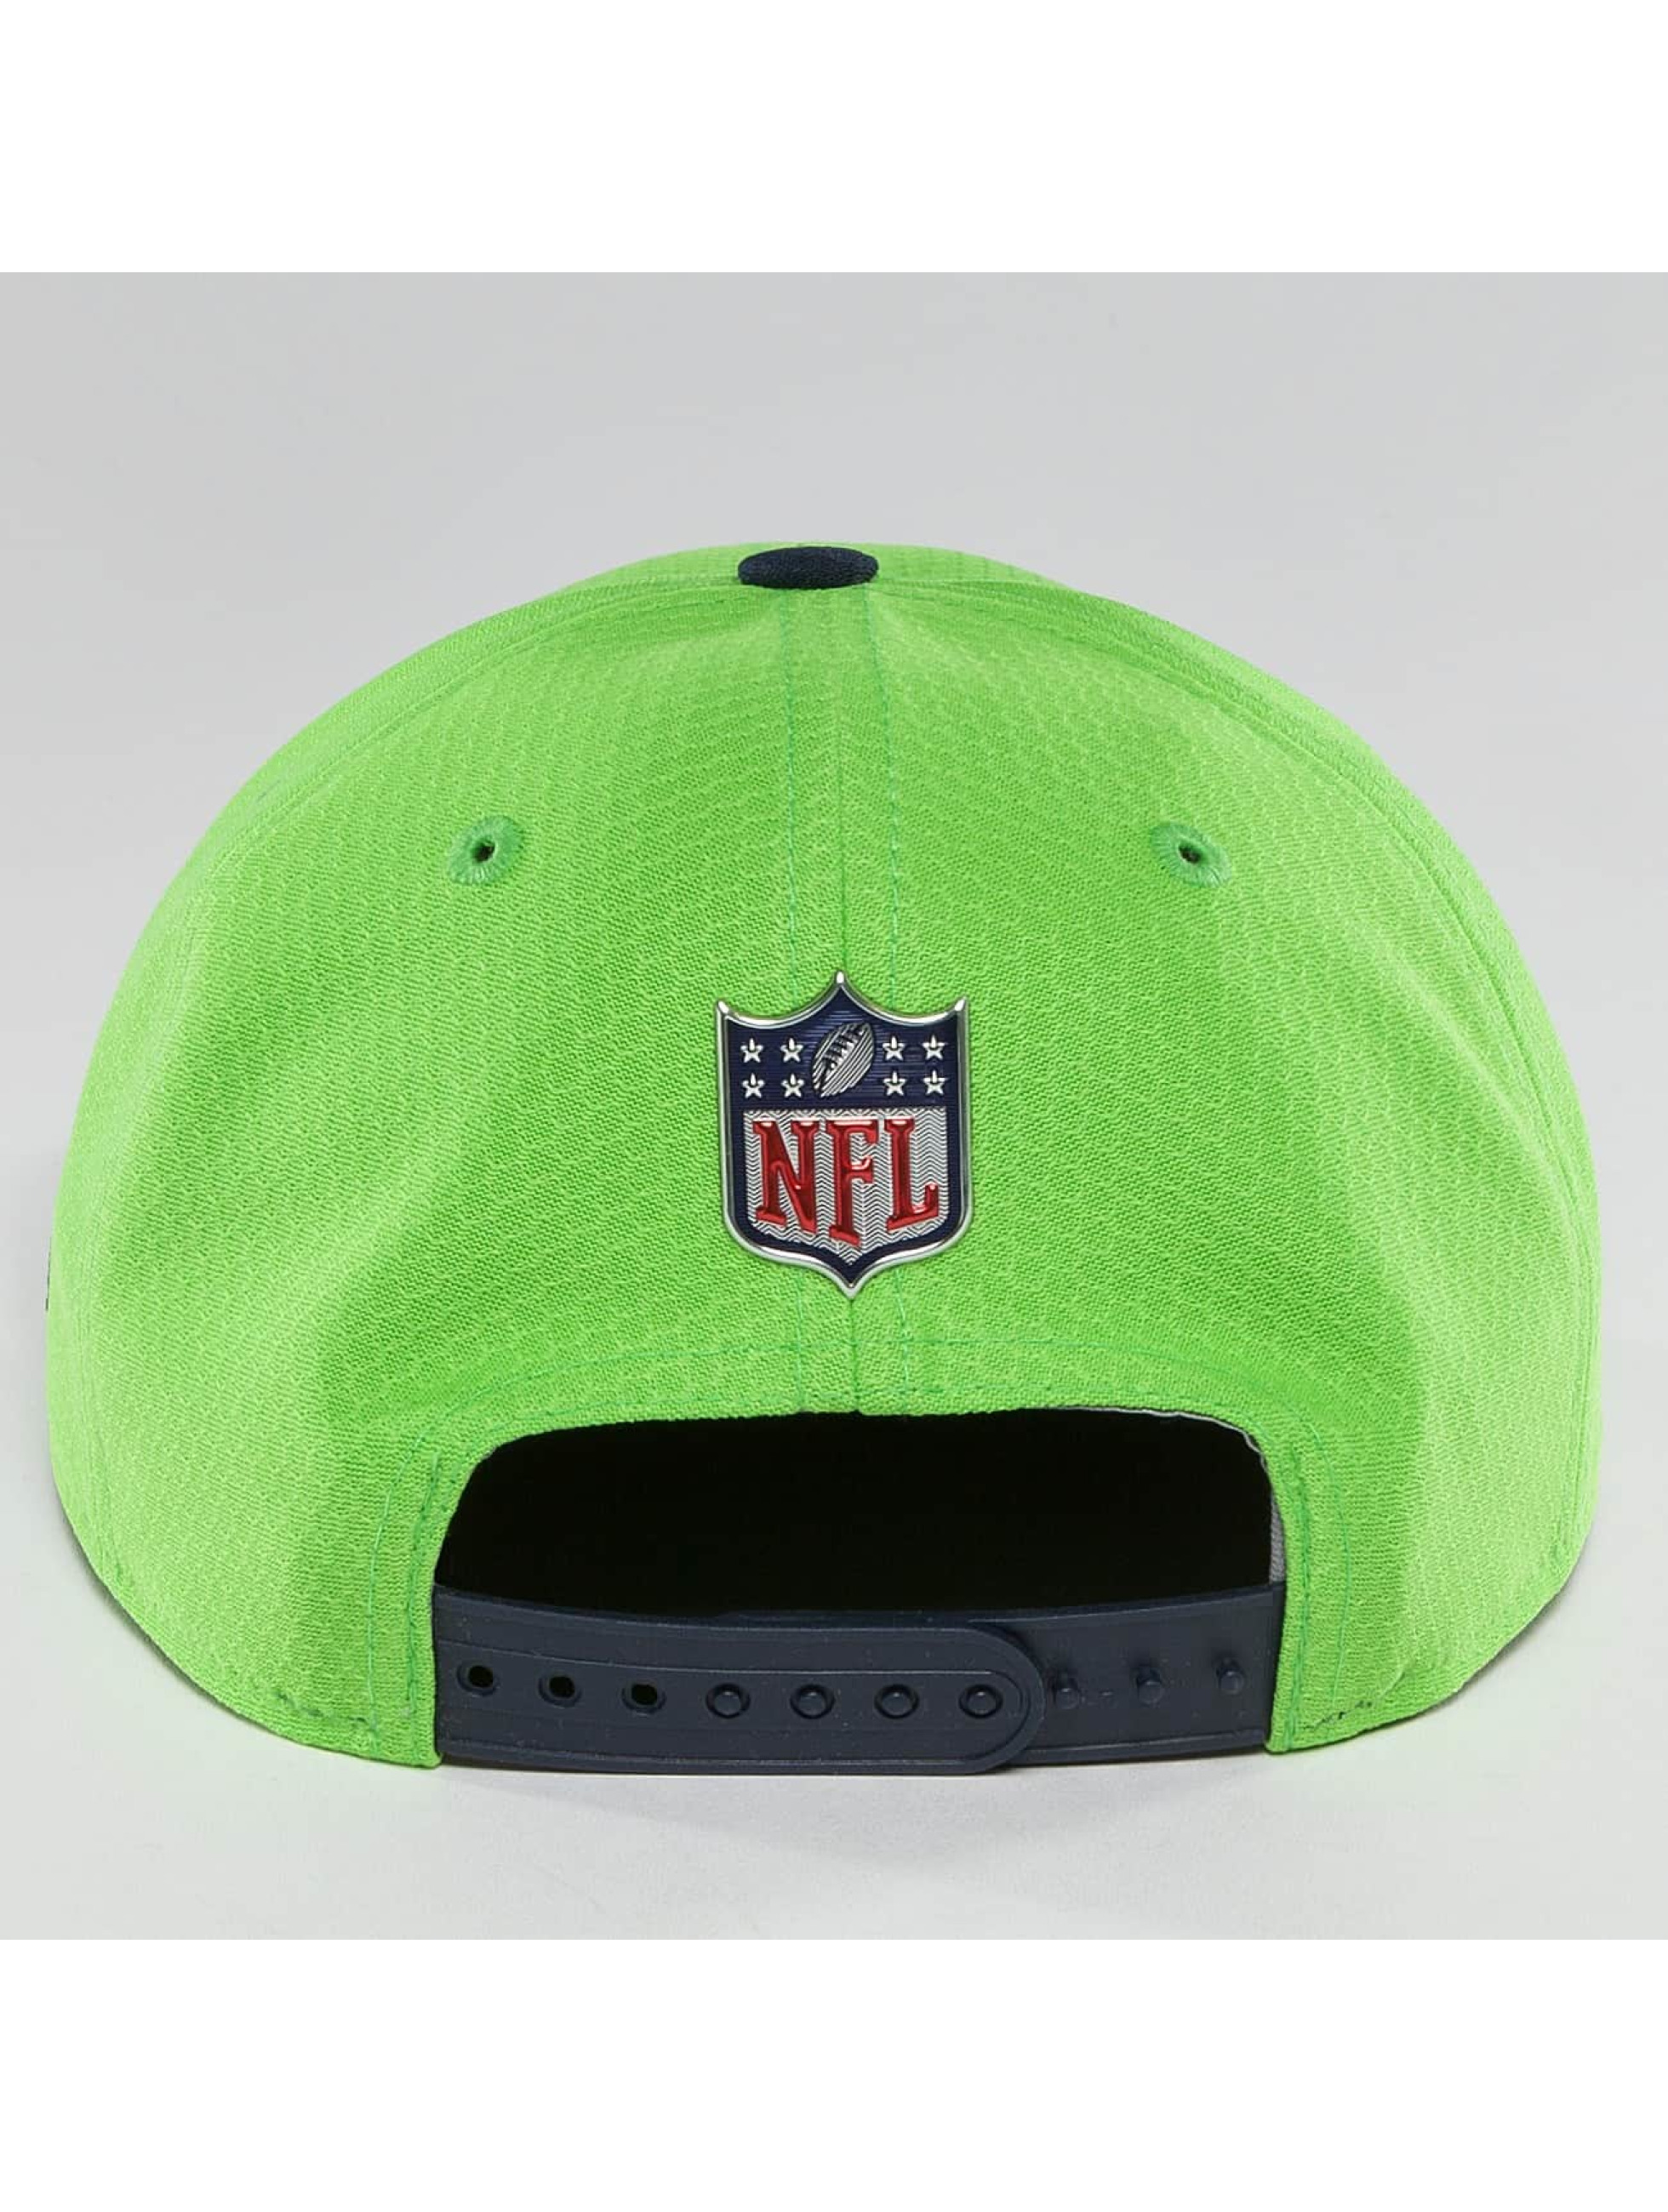 New Era Snapback Cap NFL On Field Seattle Seahawks 9Fifty green